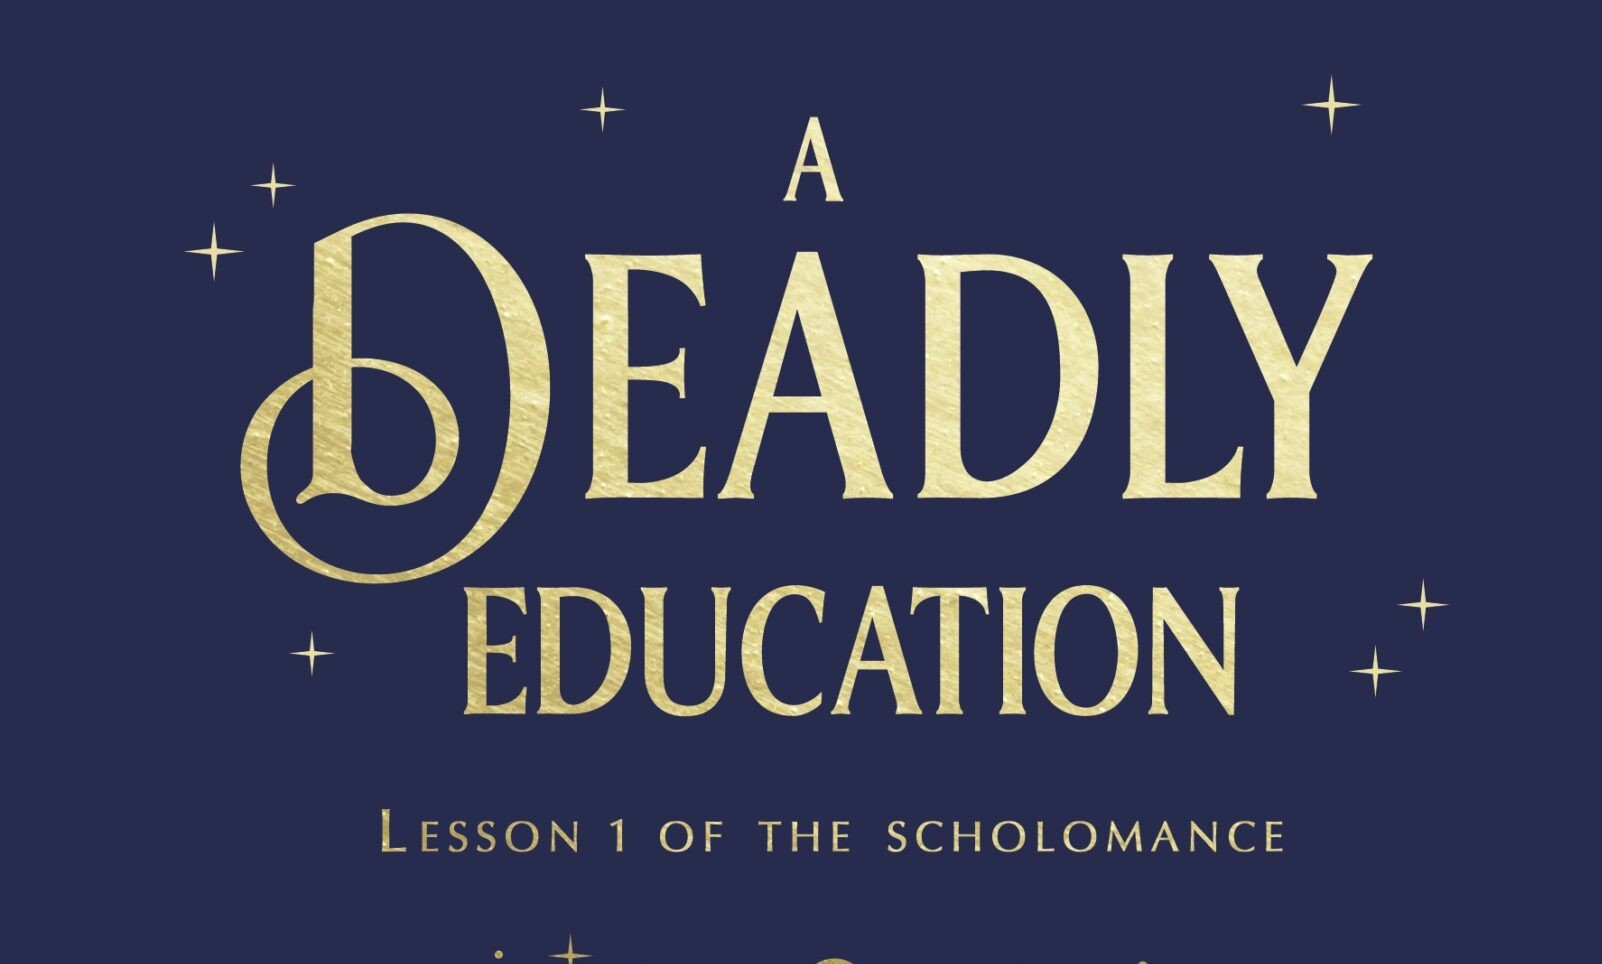 Book Cover For Naomi Novik's A Deadly Education